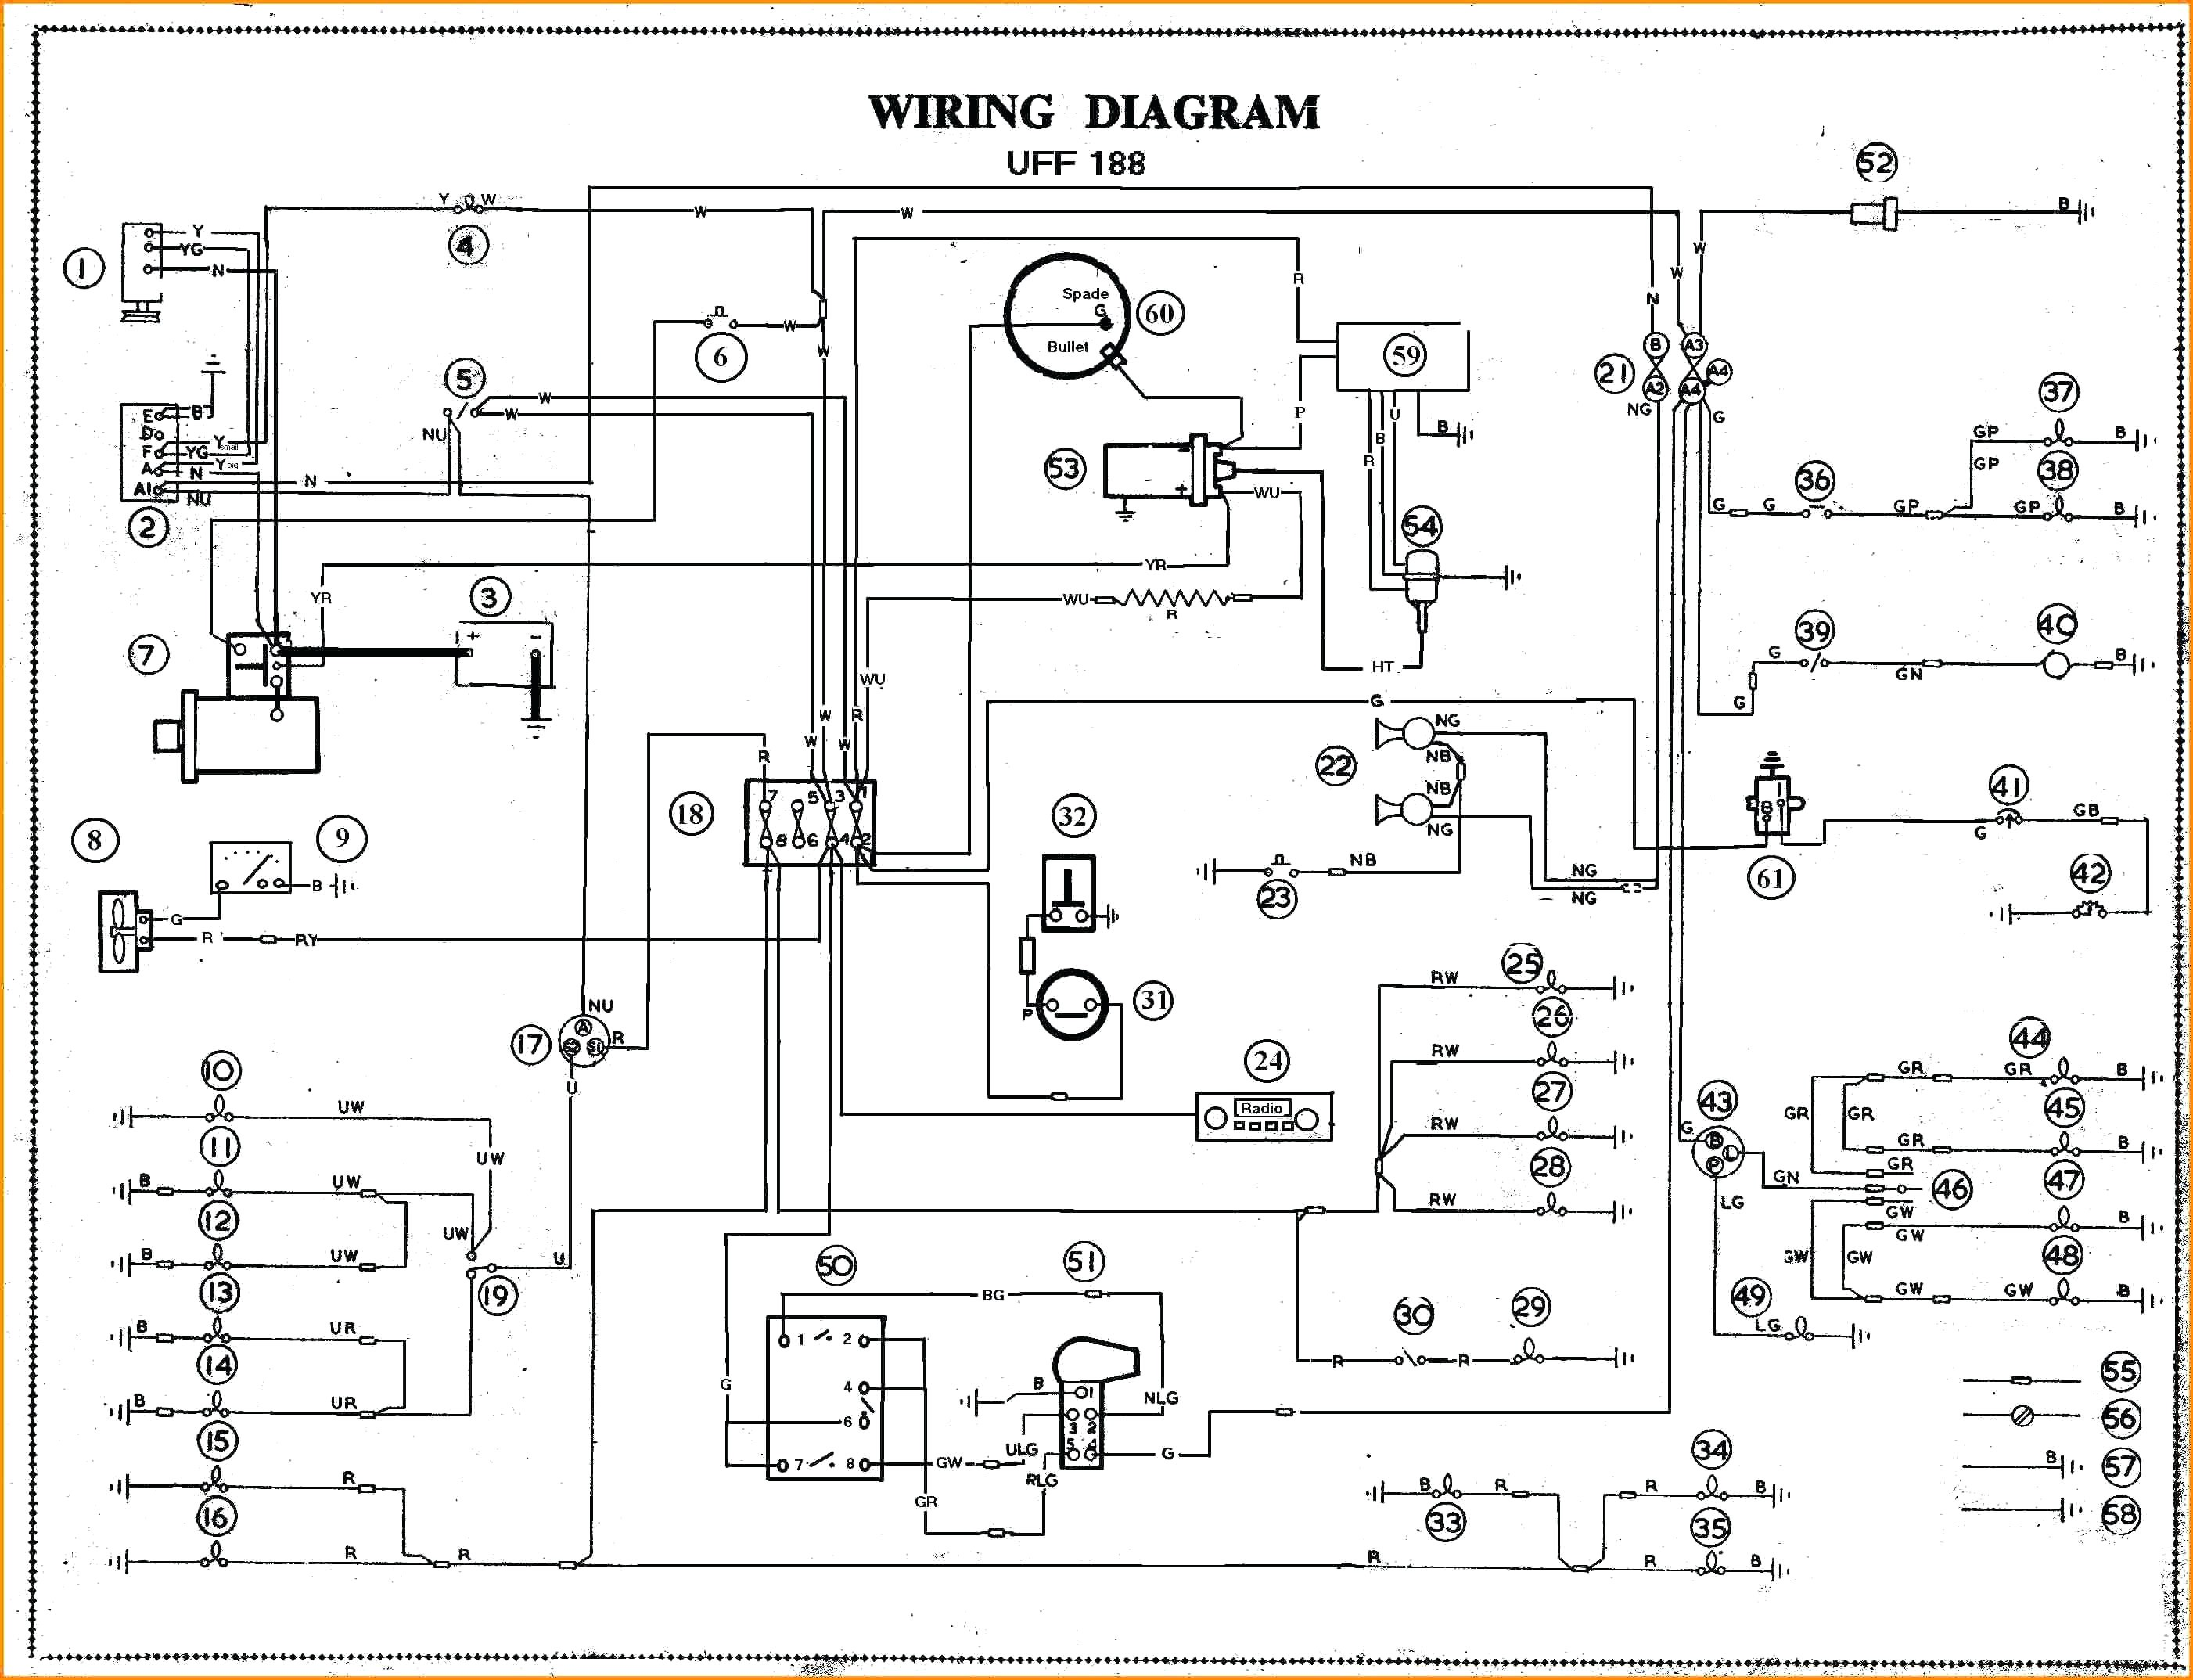 hn65ct003b wiring diagram basic guide wiring diagram u2022 rh needpixies com Basic Electrical Wiring Diagrams Wiring Diagram Symbols